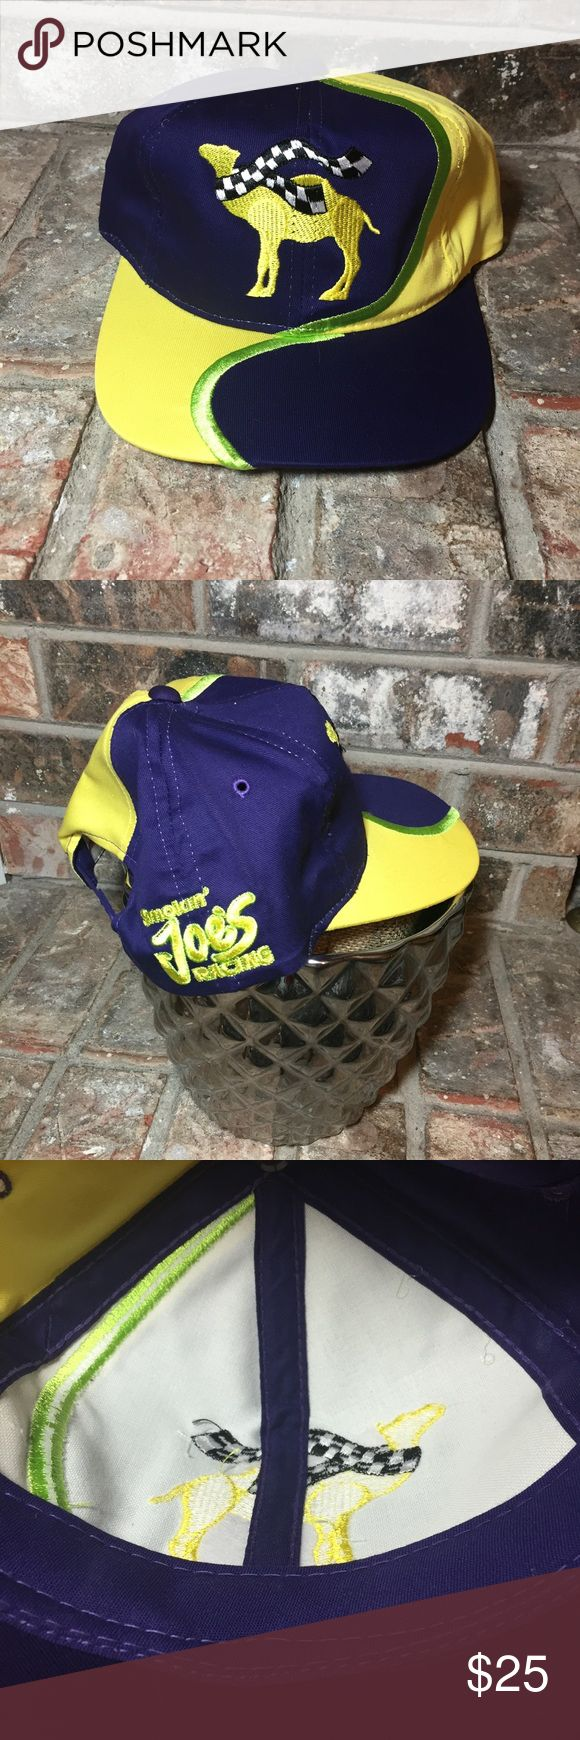 Joe camel racing baseball SnapBack hat vintage New, old stock, probably early 1990's era , unworn. New Without Tags! Best for adult MEDIUM , may fit normal adult large , but hat is Not Oversized , best for adult Medium or Med/lg. Super crisp & bright colors! Yellow, Green & Purple. Embroidered Joe Camel logo with checkered scarf. Embroidered Smokin' Joe's racing on the side   Authentic , original , vintage Camel Cap, Hat Hat is in NEW condition , old stock, new, NO hang-tag.   Full cloth…